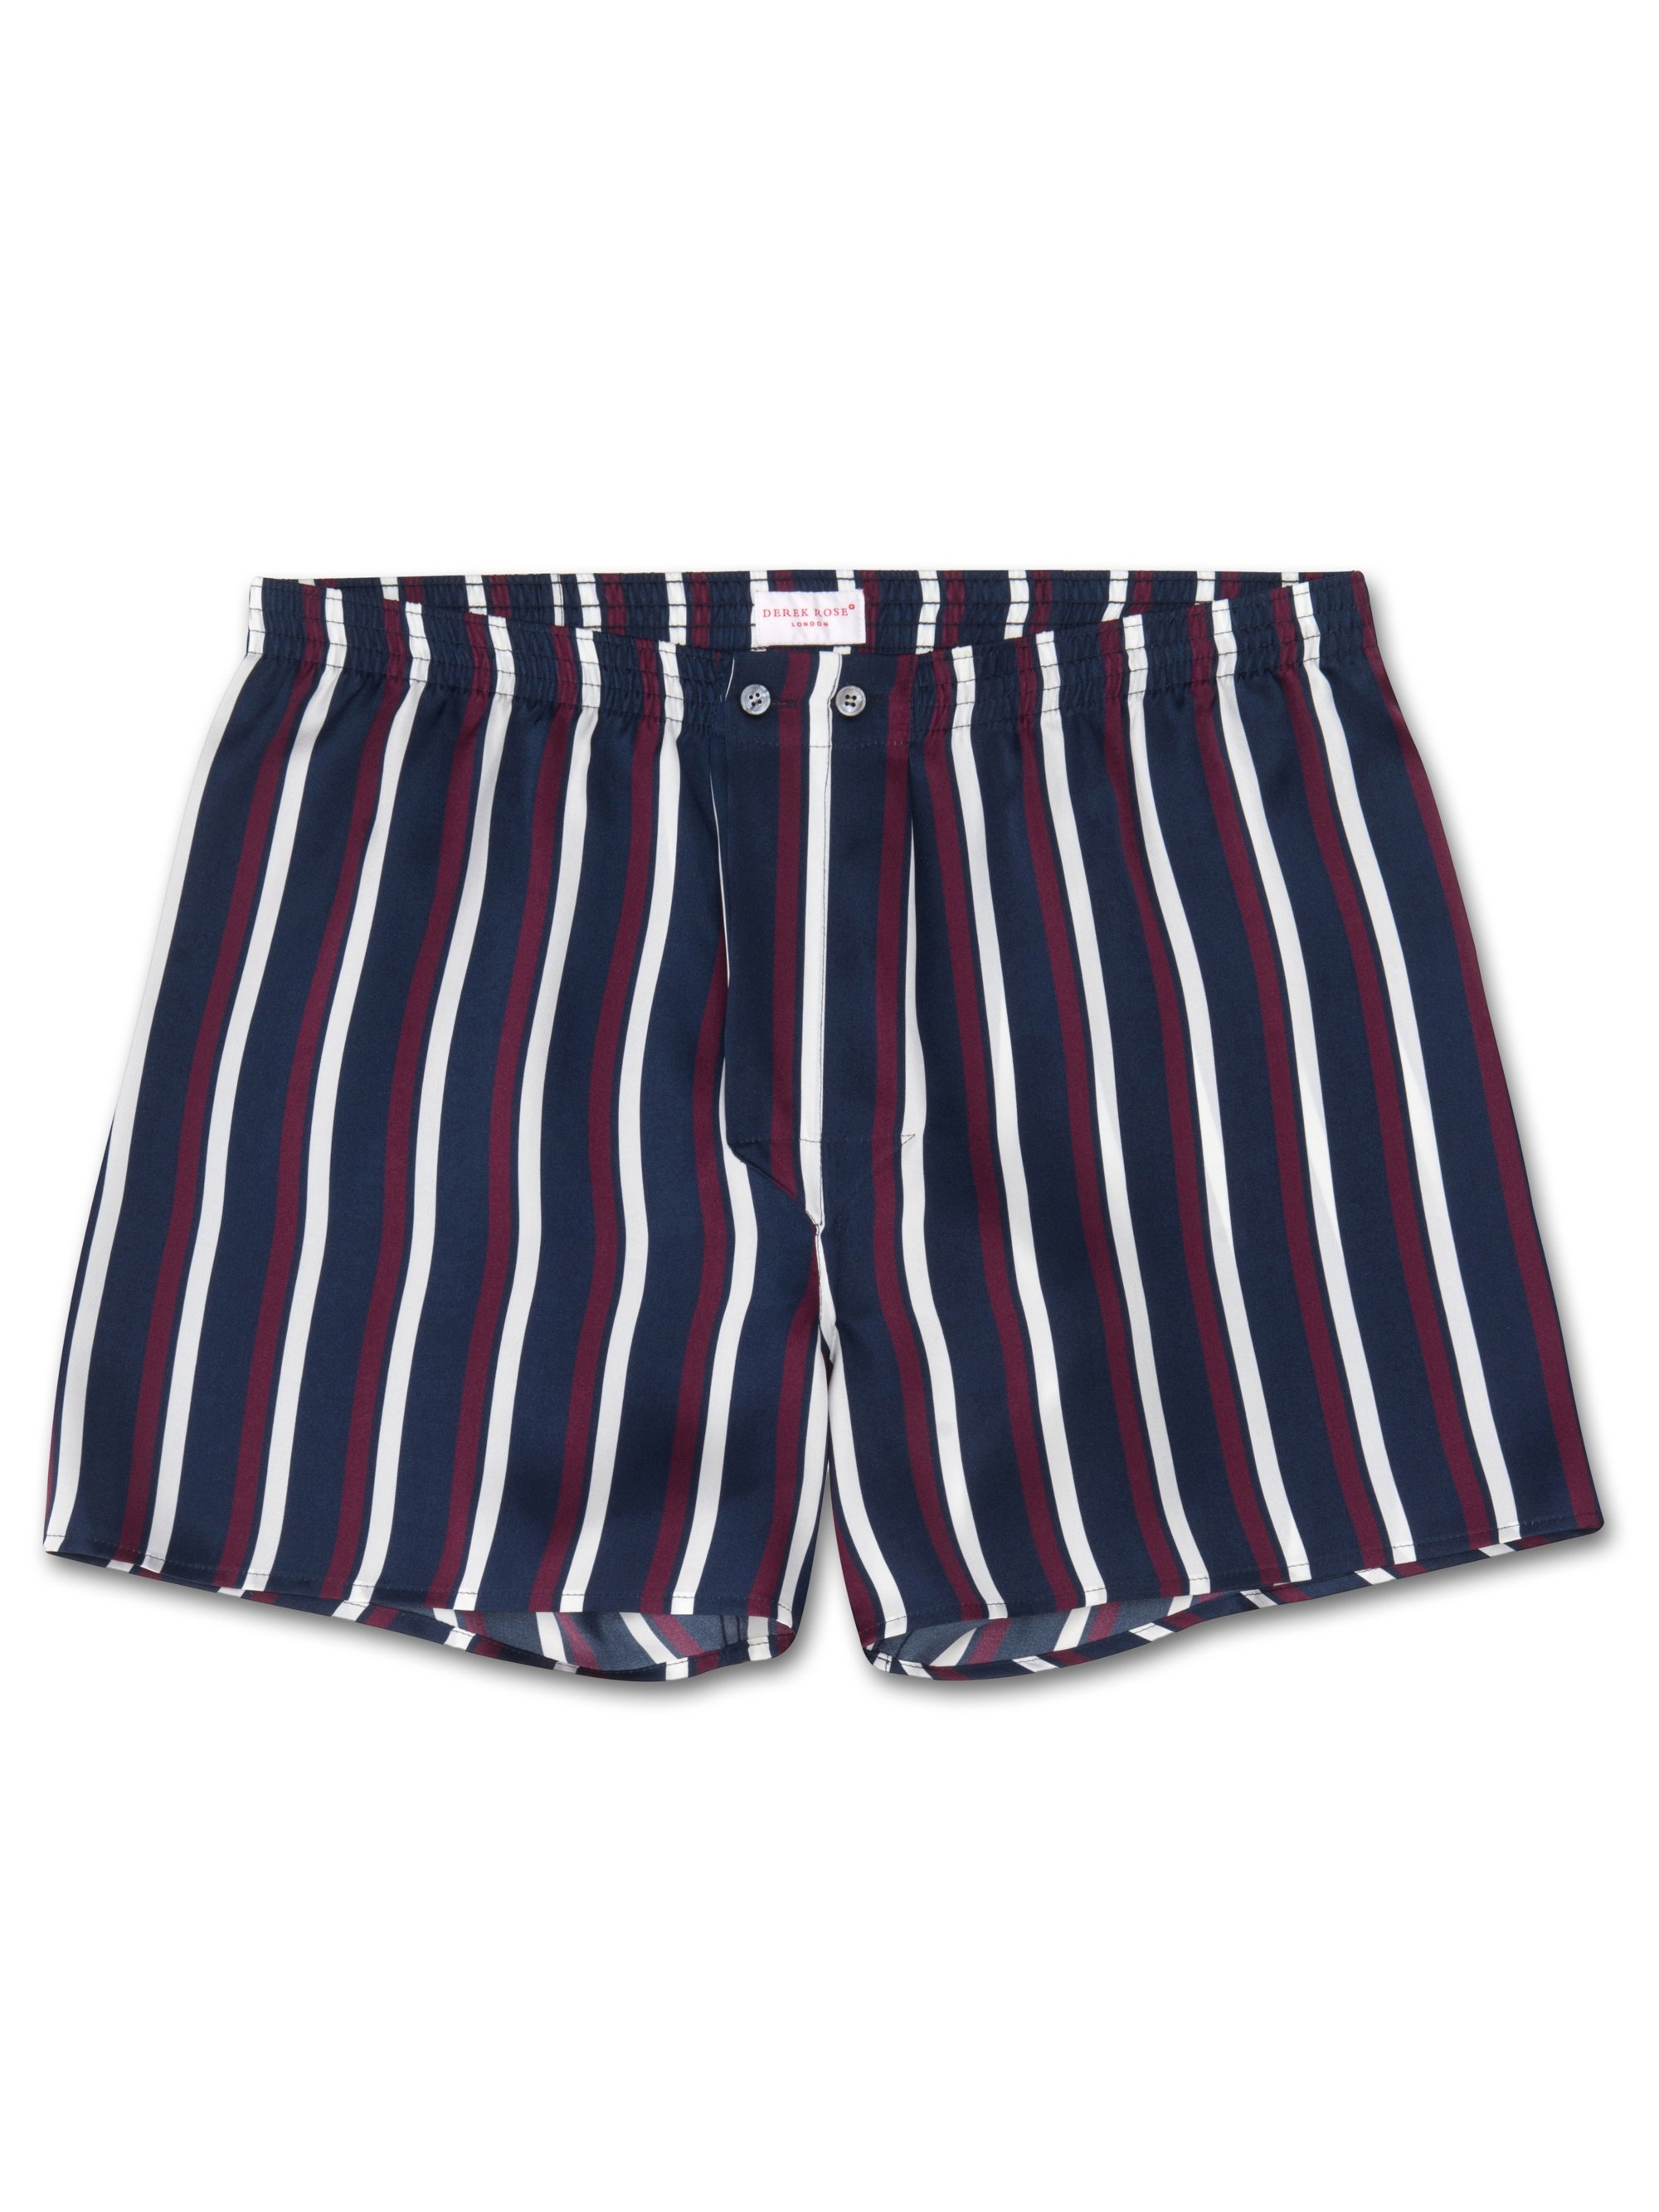 Men's Classic Fit Boxer Shorts Brindisi 31 Pure Silk Satin Navy